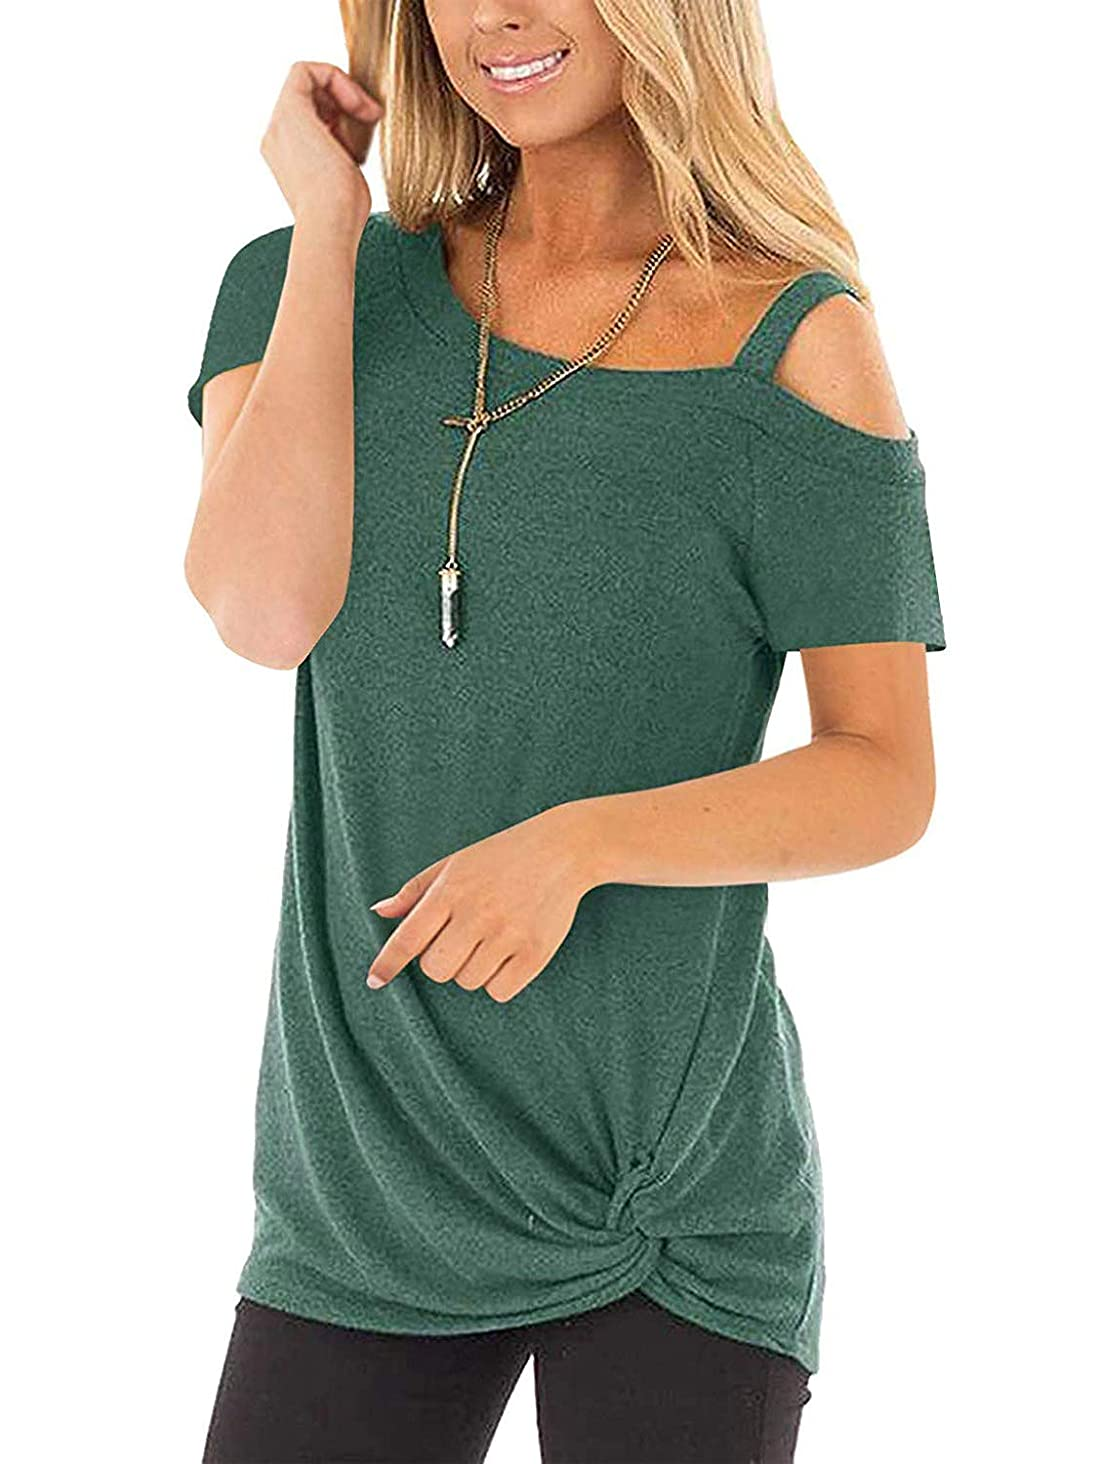 Yidarton Women's Comfy Casual Short Sleeve Side Twist Knotted Tops Blouse Tunic T Shirts